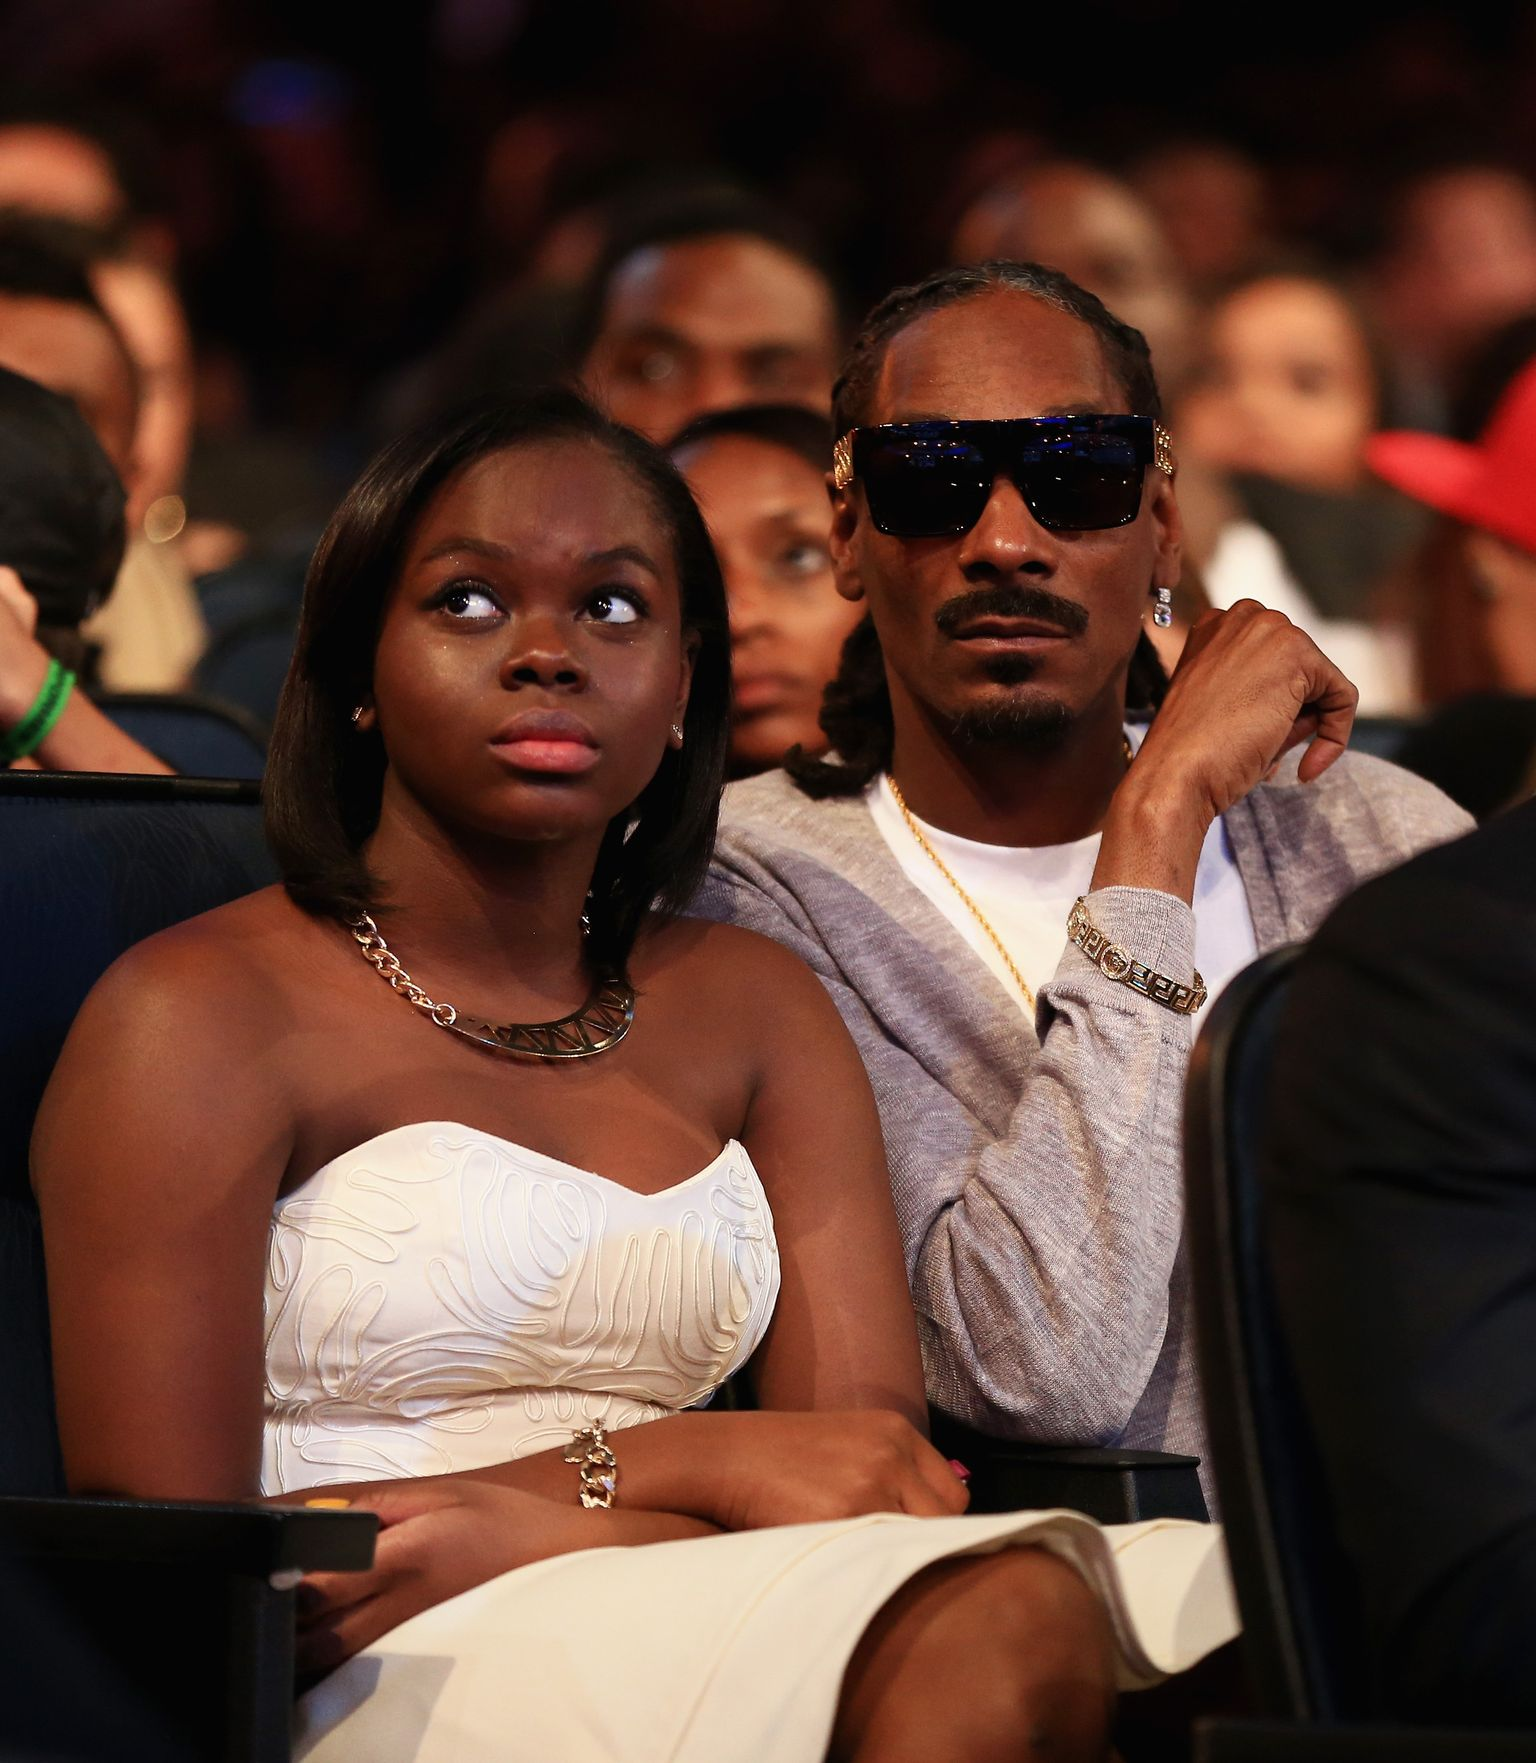 Recording artist Snoop Dogg and Cori Broadus at the BET Awards '14 at Nokia Theatre L.A. LIVE on June 29, 2014 in Los Angeles, California. | Photo: Getty Images